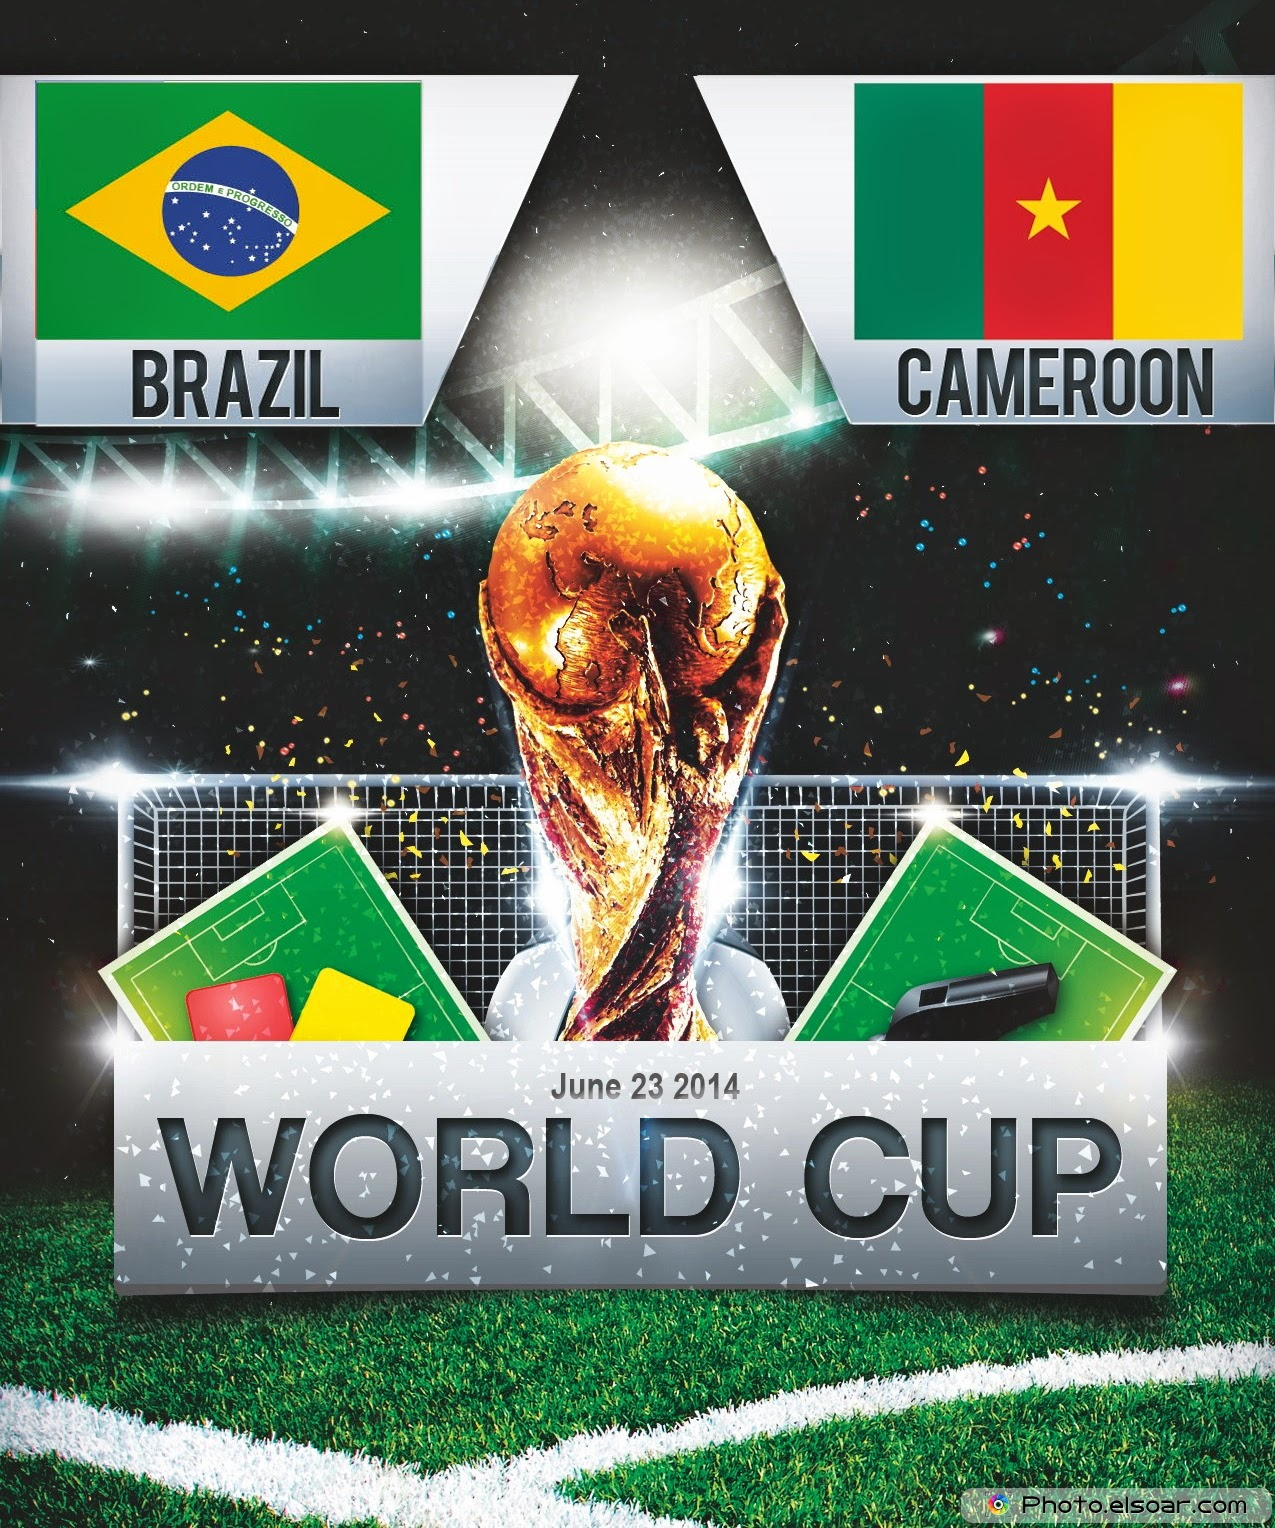 FIFA World Cup 2014 - Brazil Vs Cameroon